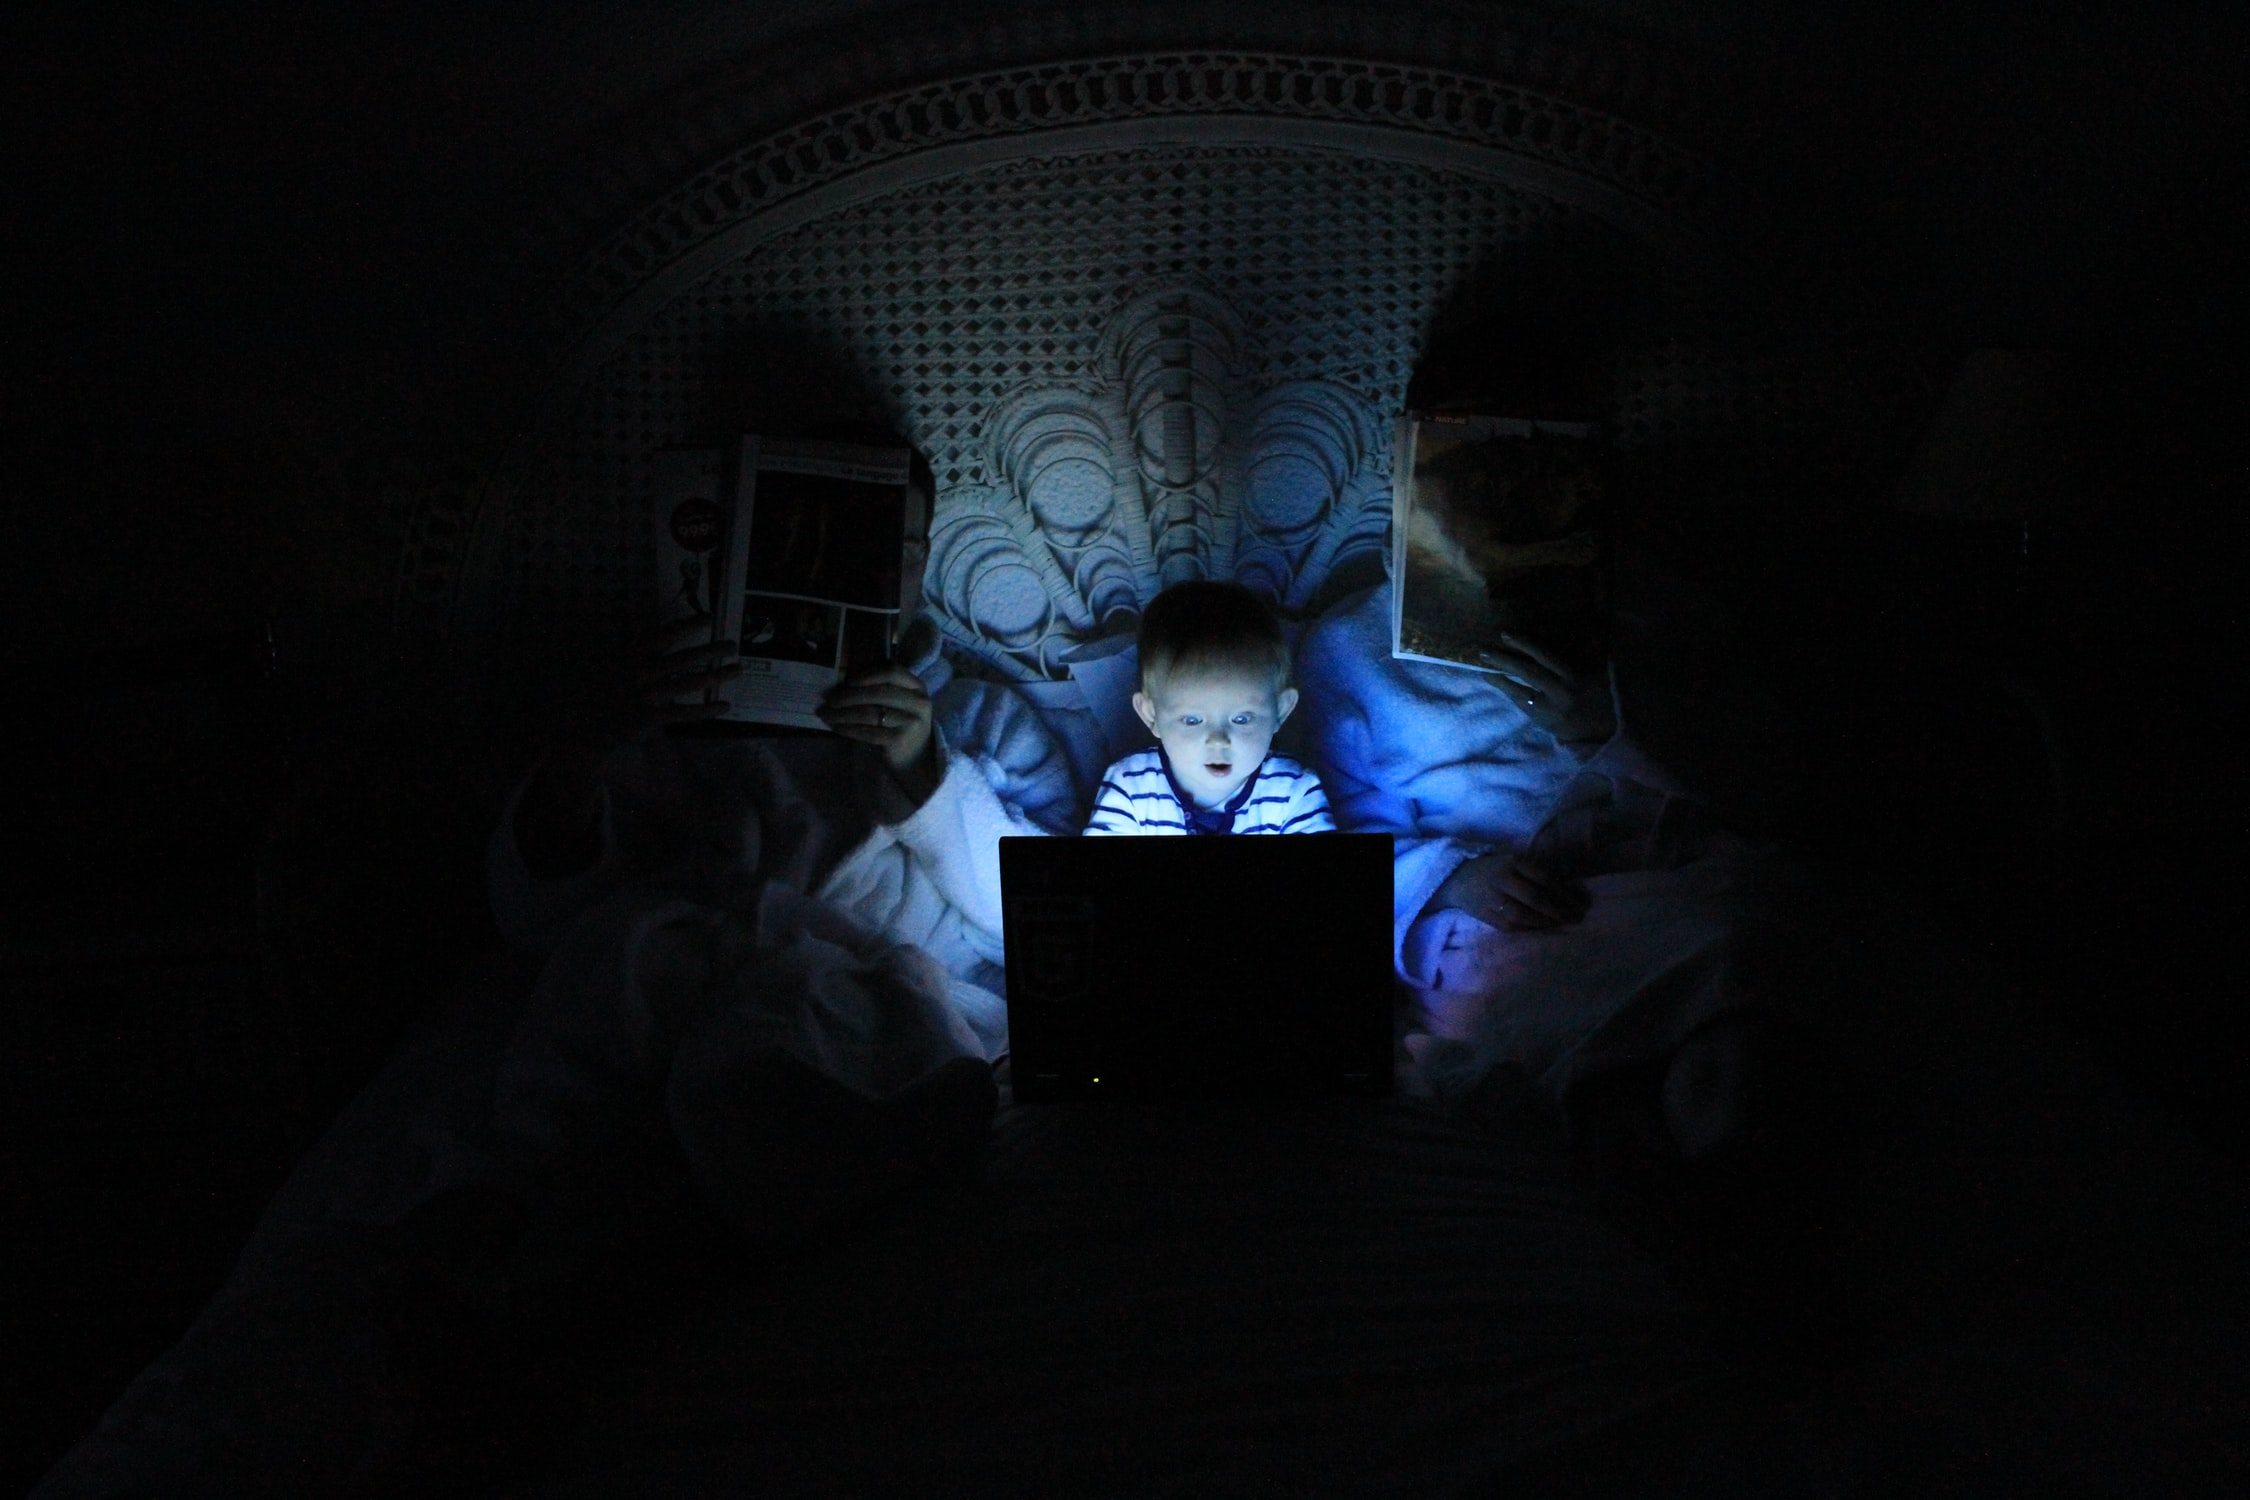 A child staring at a laptop screen with a captured expression at night while parents read a regular newspaper